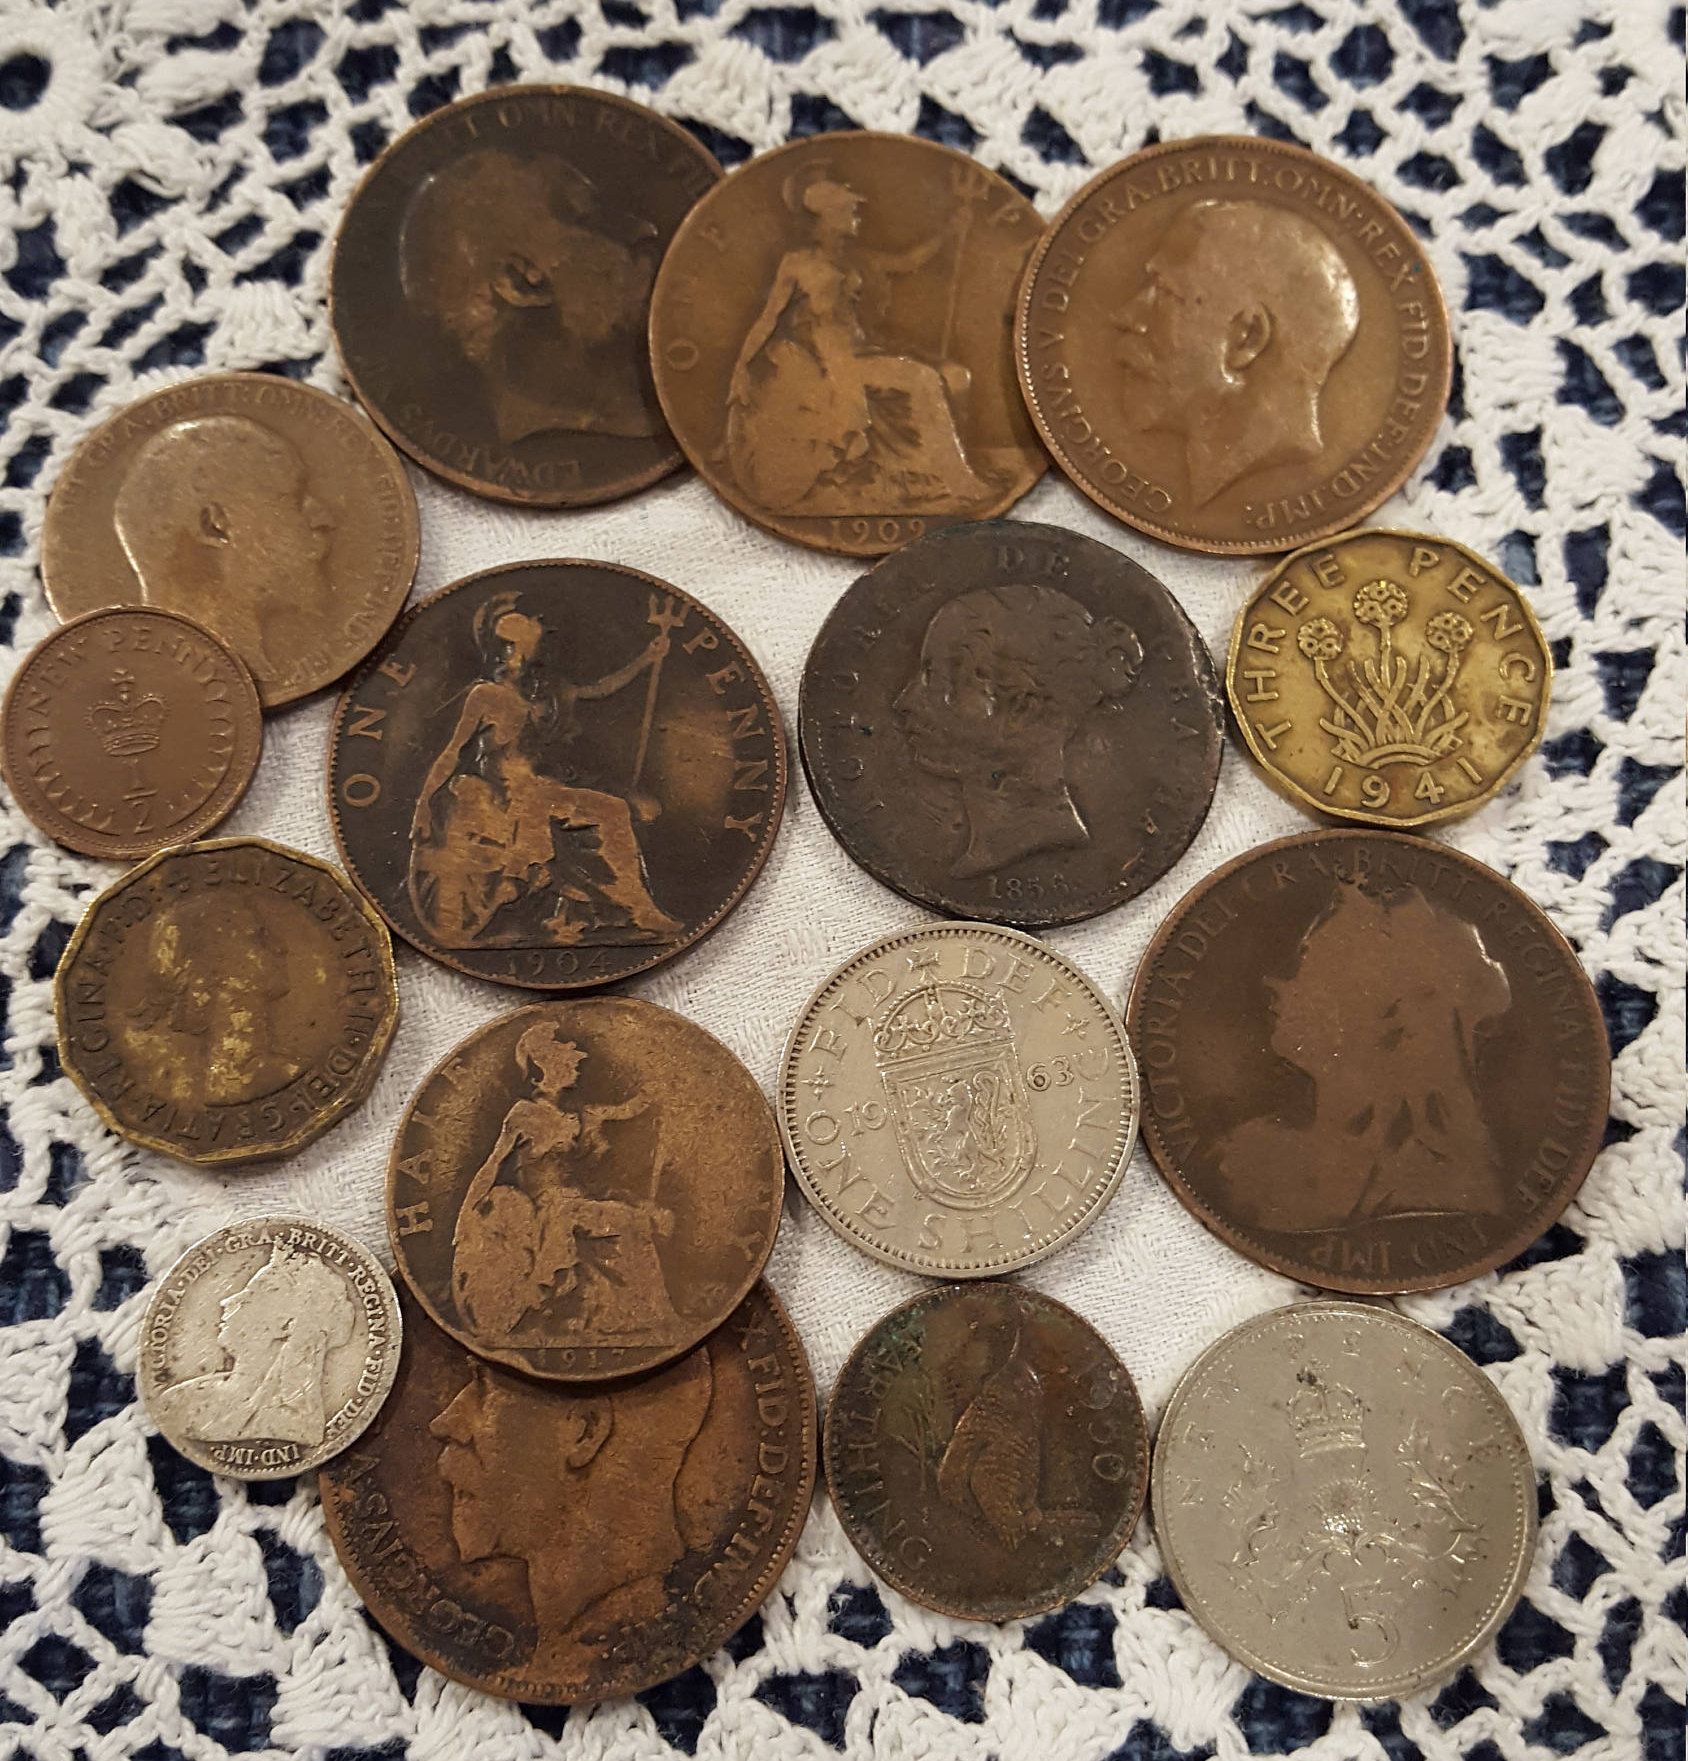 1960s Queen V to Queen Elizabeth ^ 1900s LOT OF 20 UK BRITISH PENNY COINS 1899